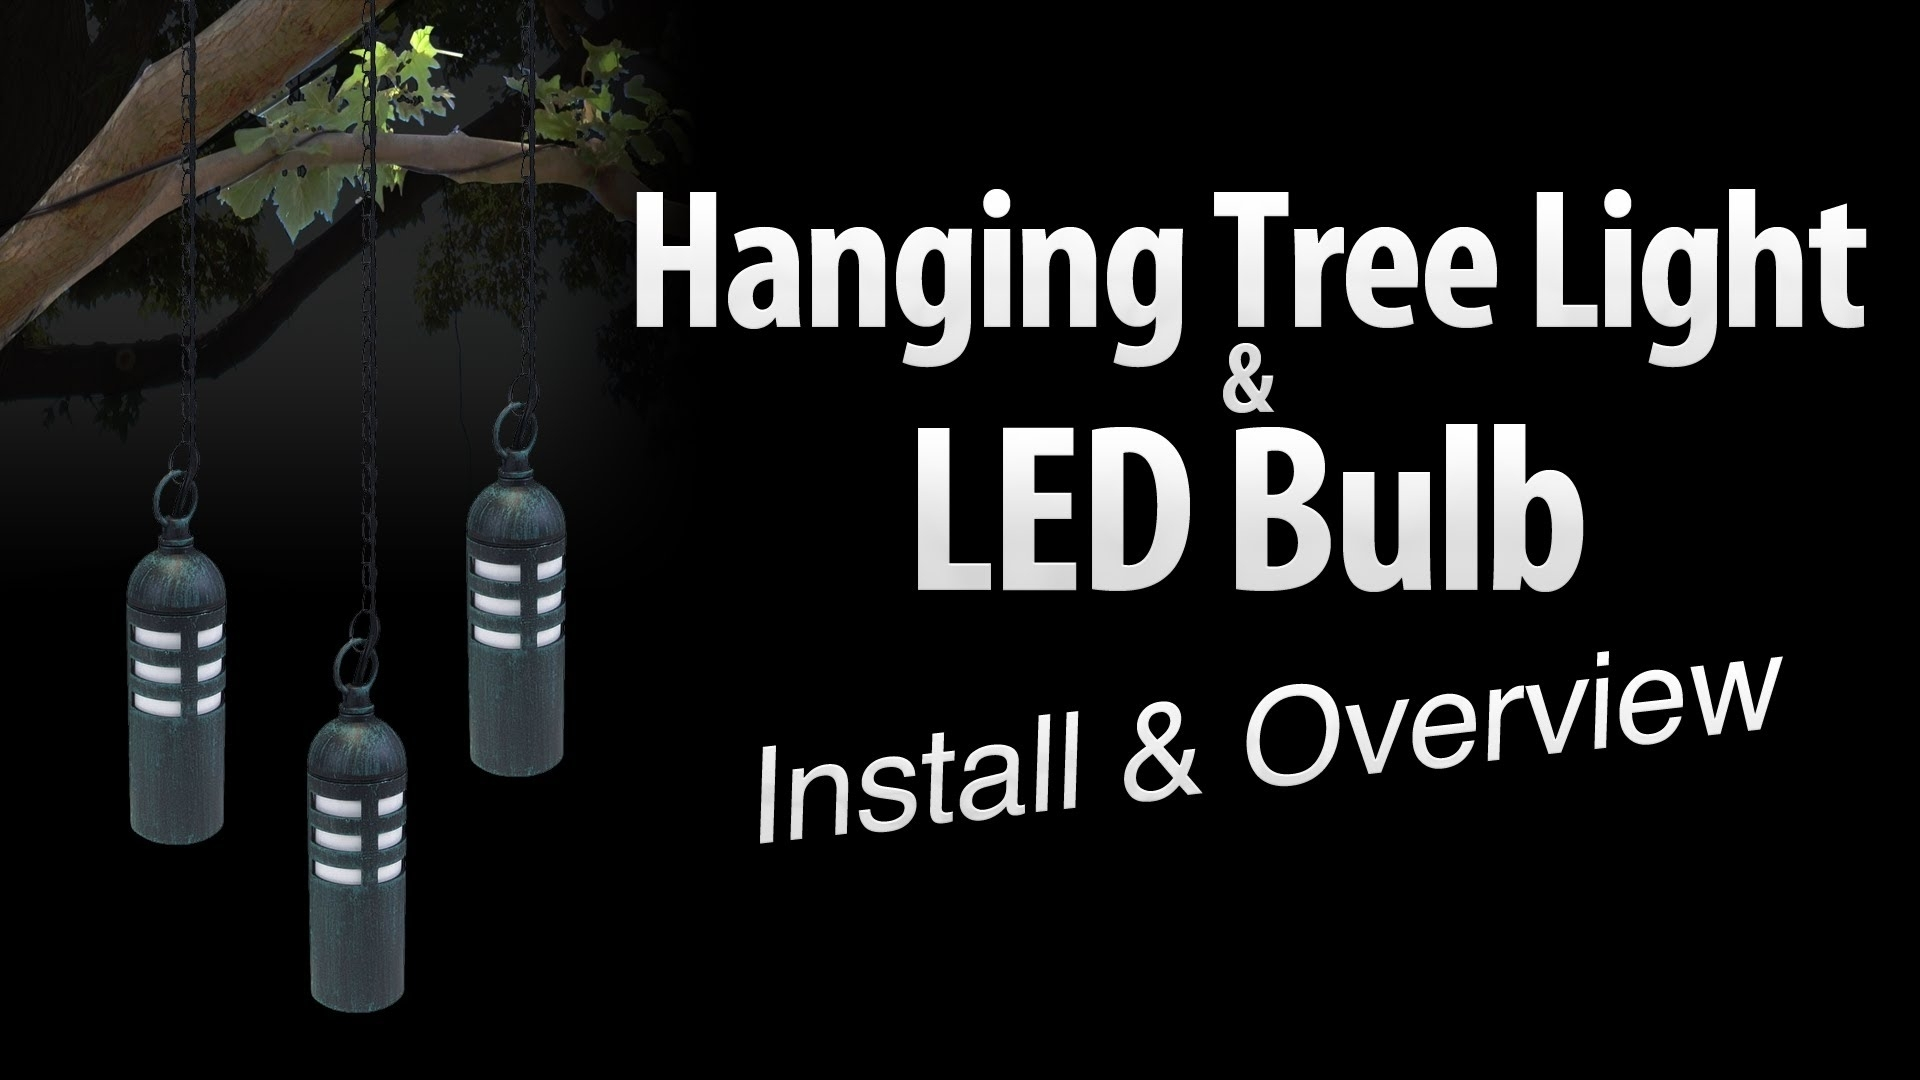 Hanging Tree Light & Led Light Bulb Install & Overviewtotal Throughout Hanging Outdoor Flood Lights (View 5 of 15)